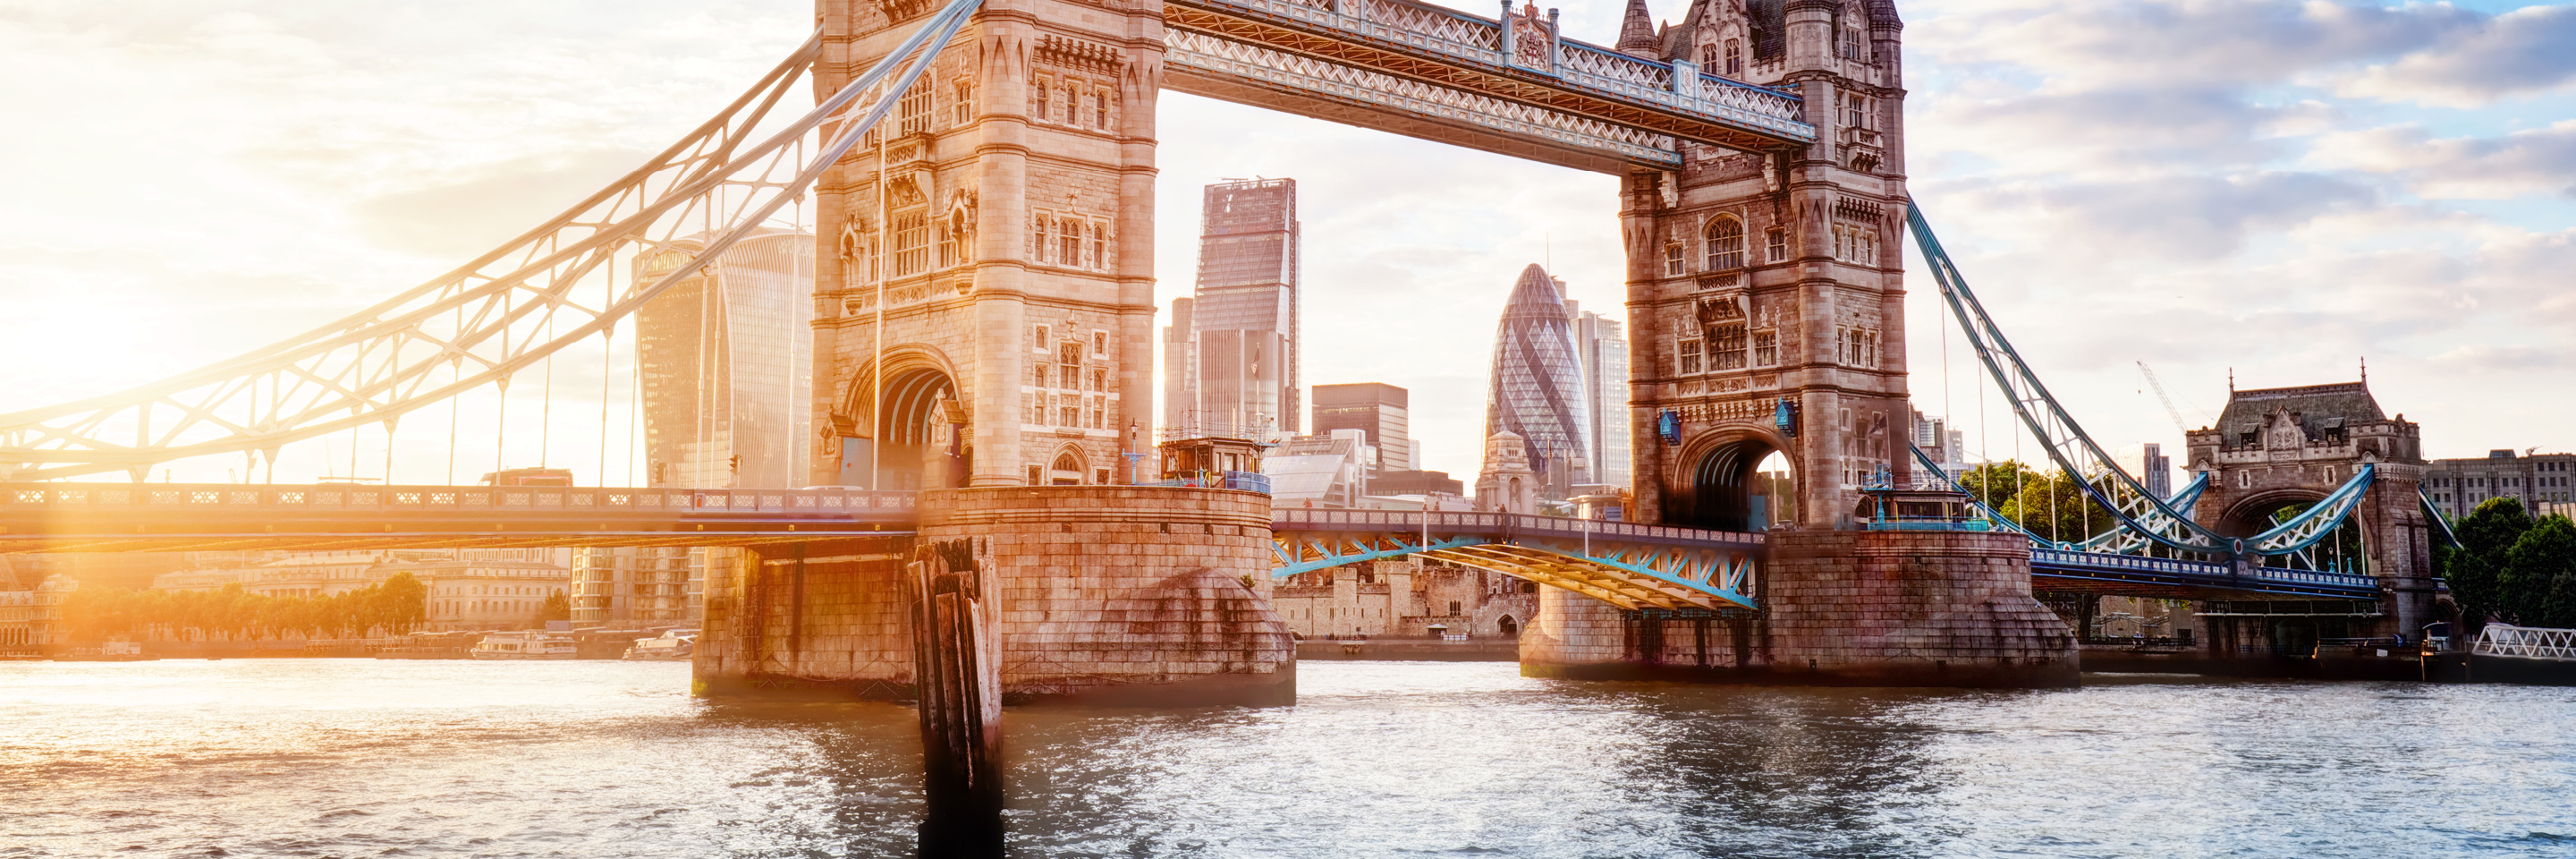 A Culinary Experience in Burgundy & Provence with 2 Nights in Paris & 3 Nights in London (Northbound)